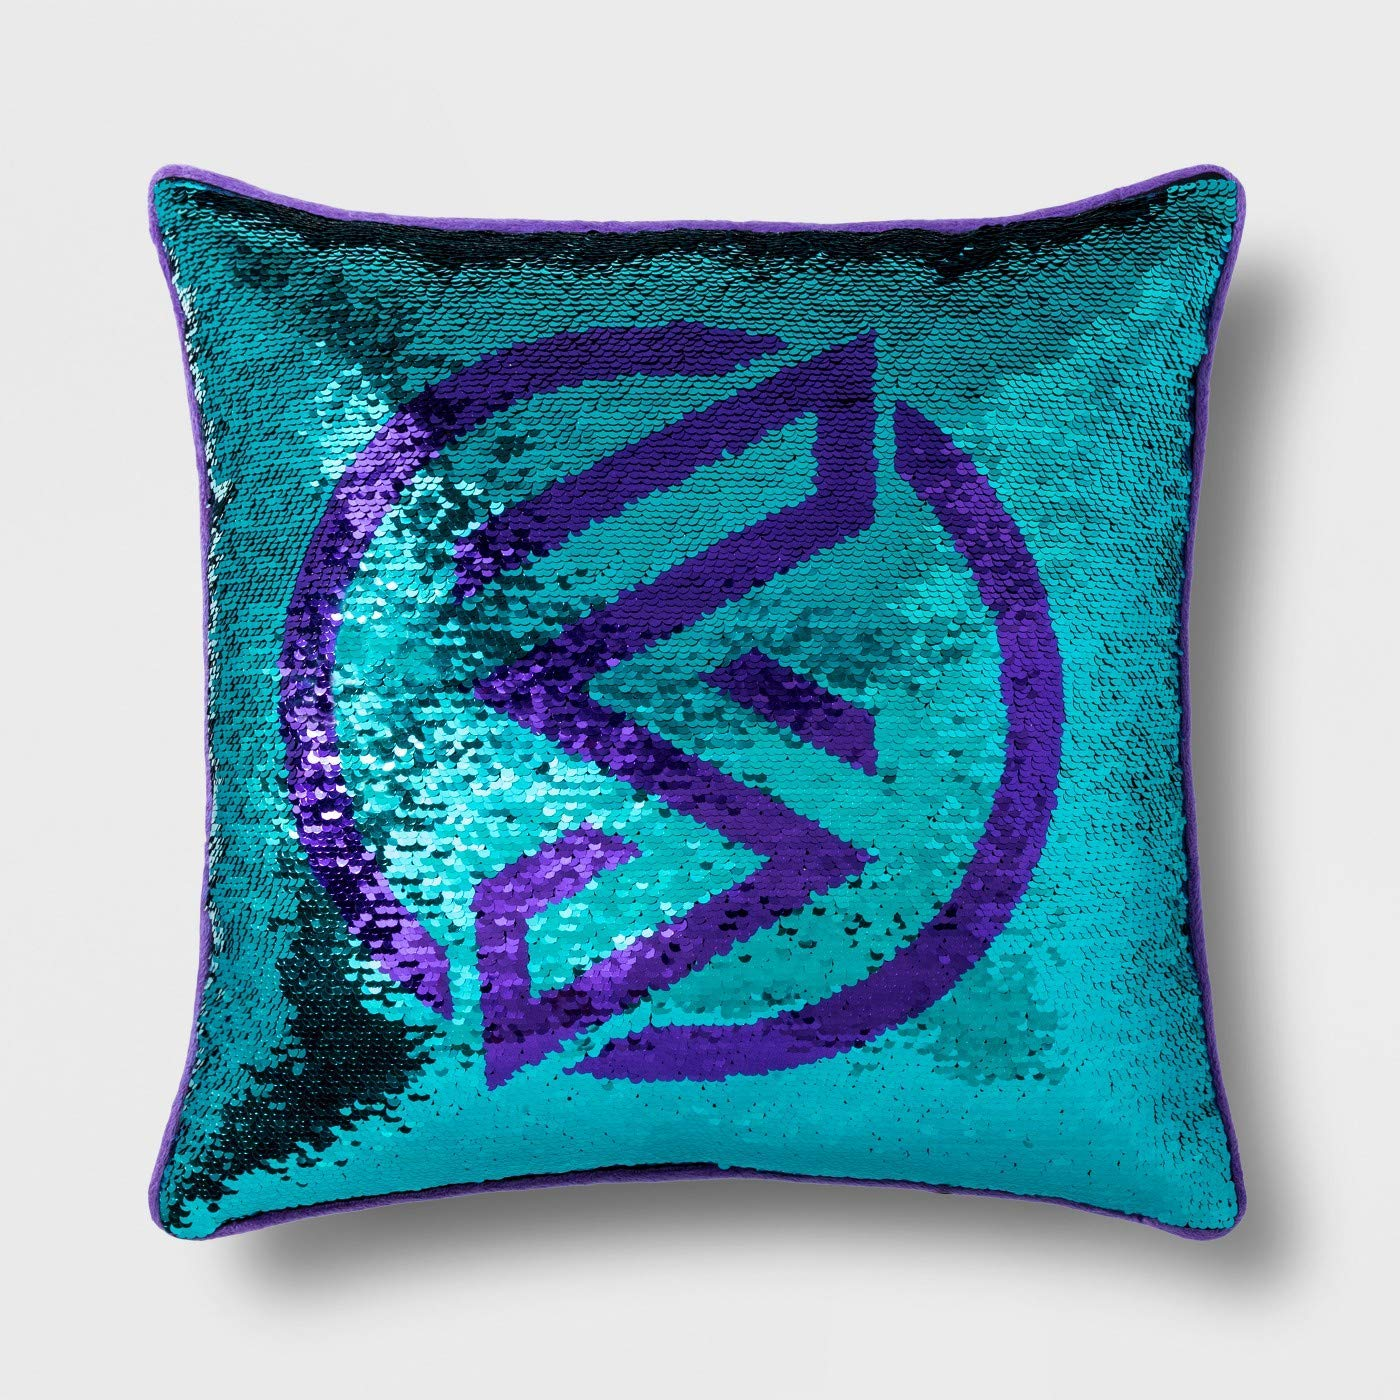 Marvel Rising Secret Warriors Reversible Sequin Decorative Pillow - Kids Bedding, Measures 16 inch x 16 inch - (Official Marvel Product)